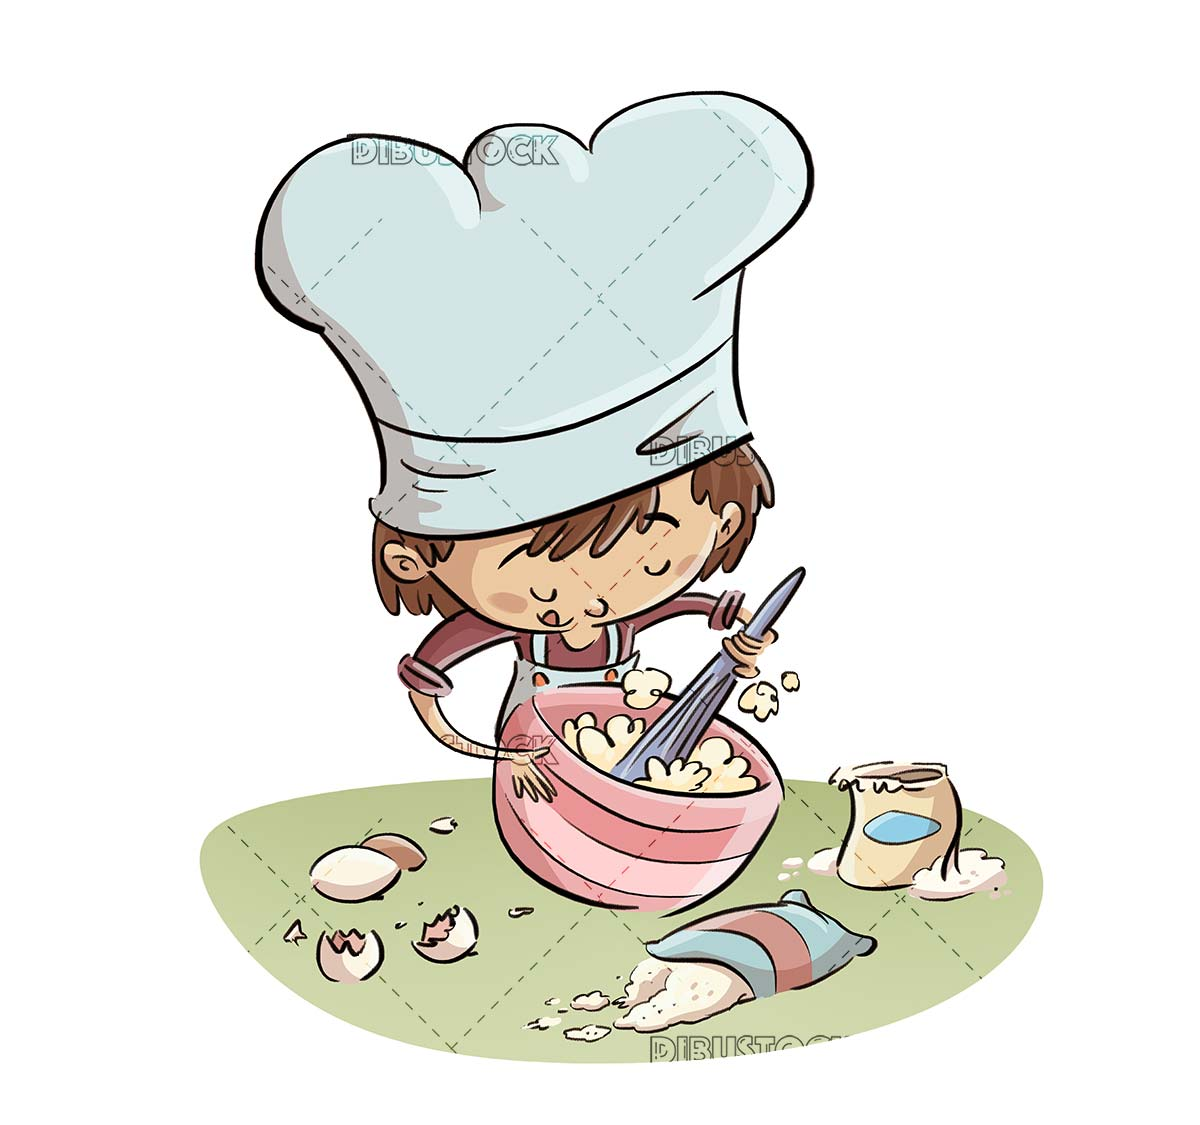 cook boy whisking cooking ingredients in a bowl